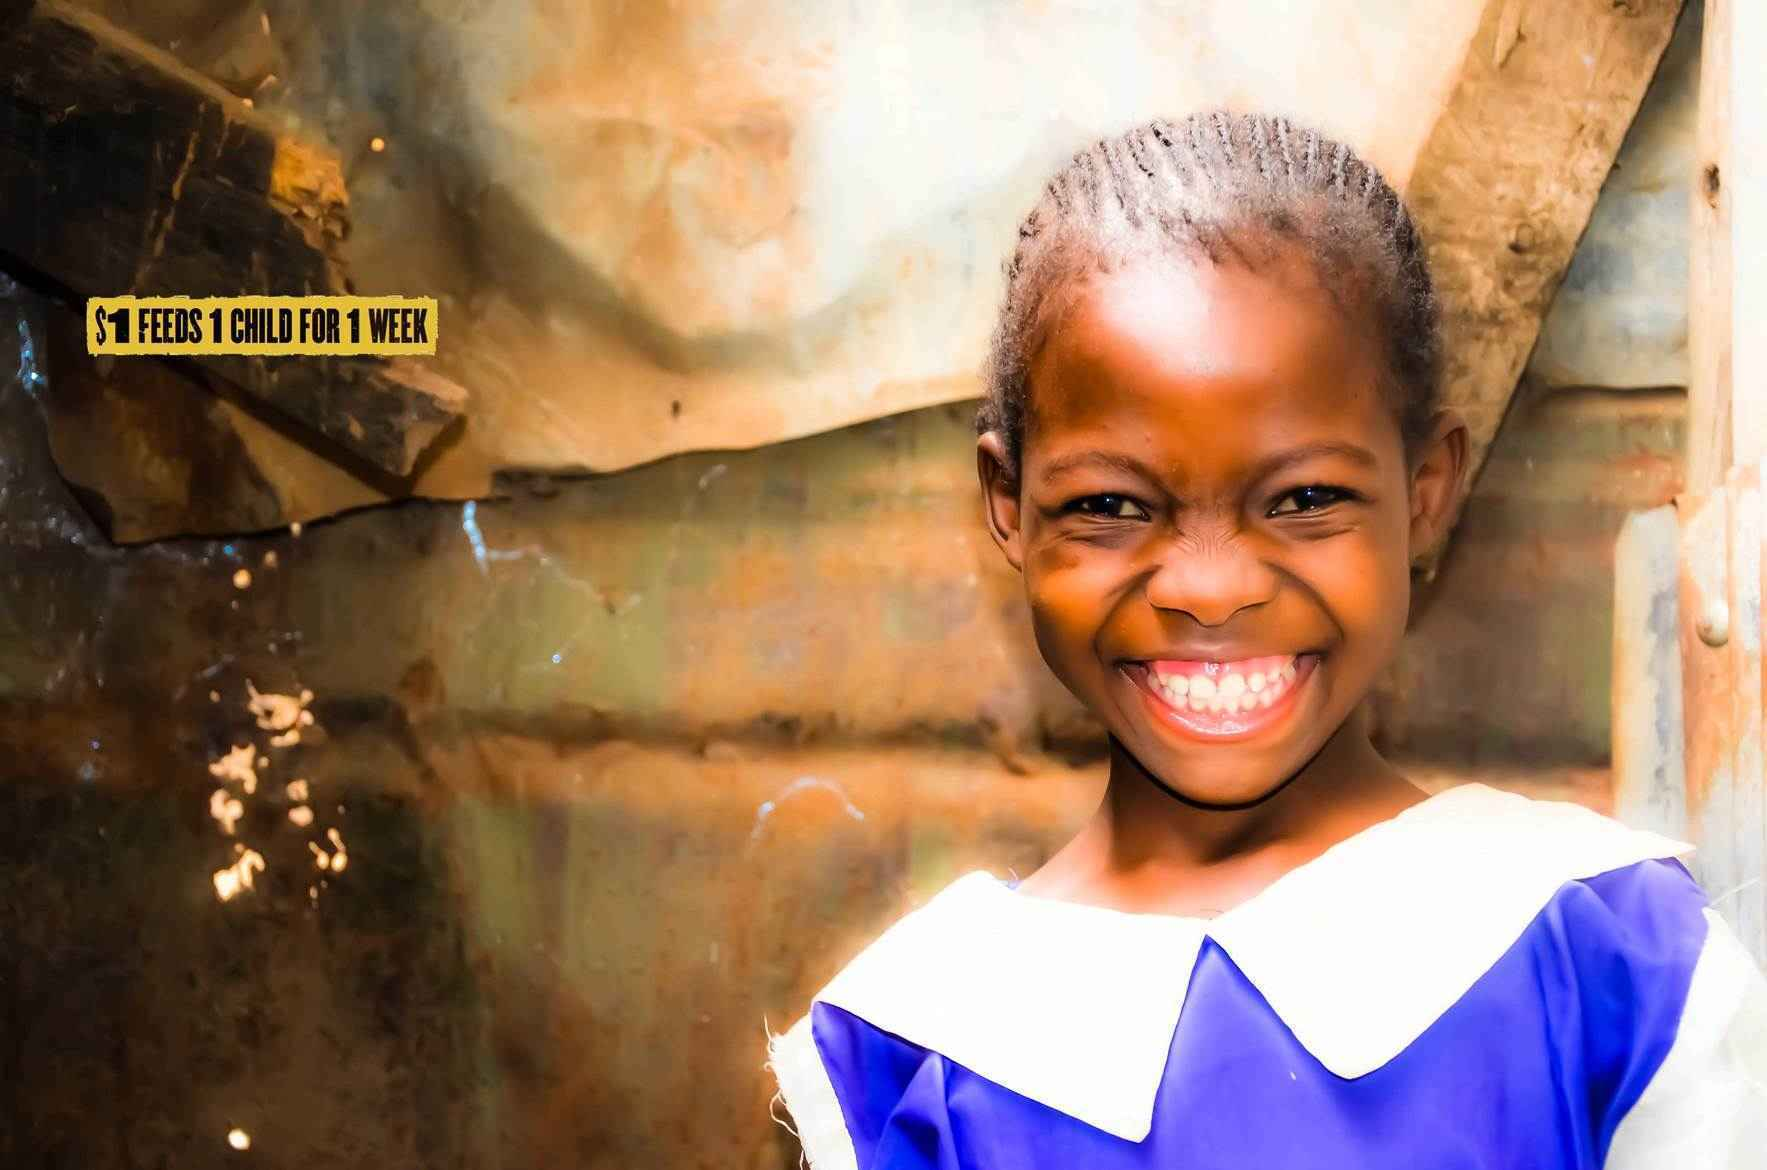 Donate as a partner to feed children in the slums of Nairobi! image